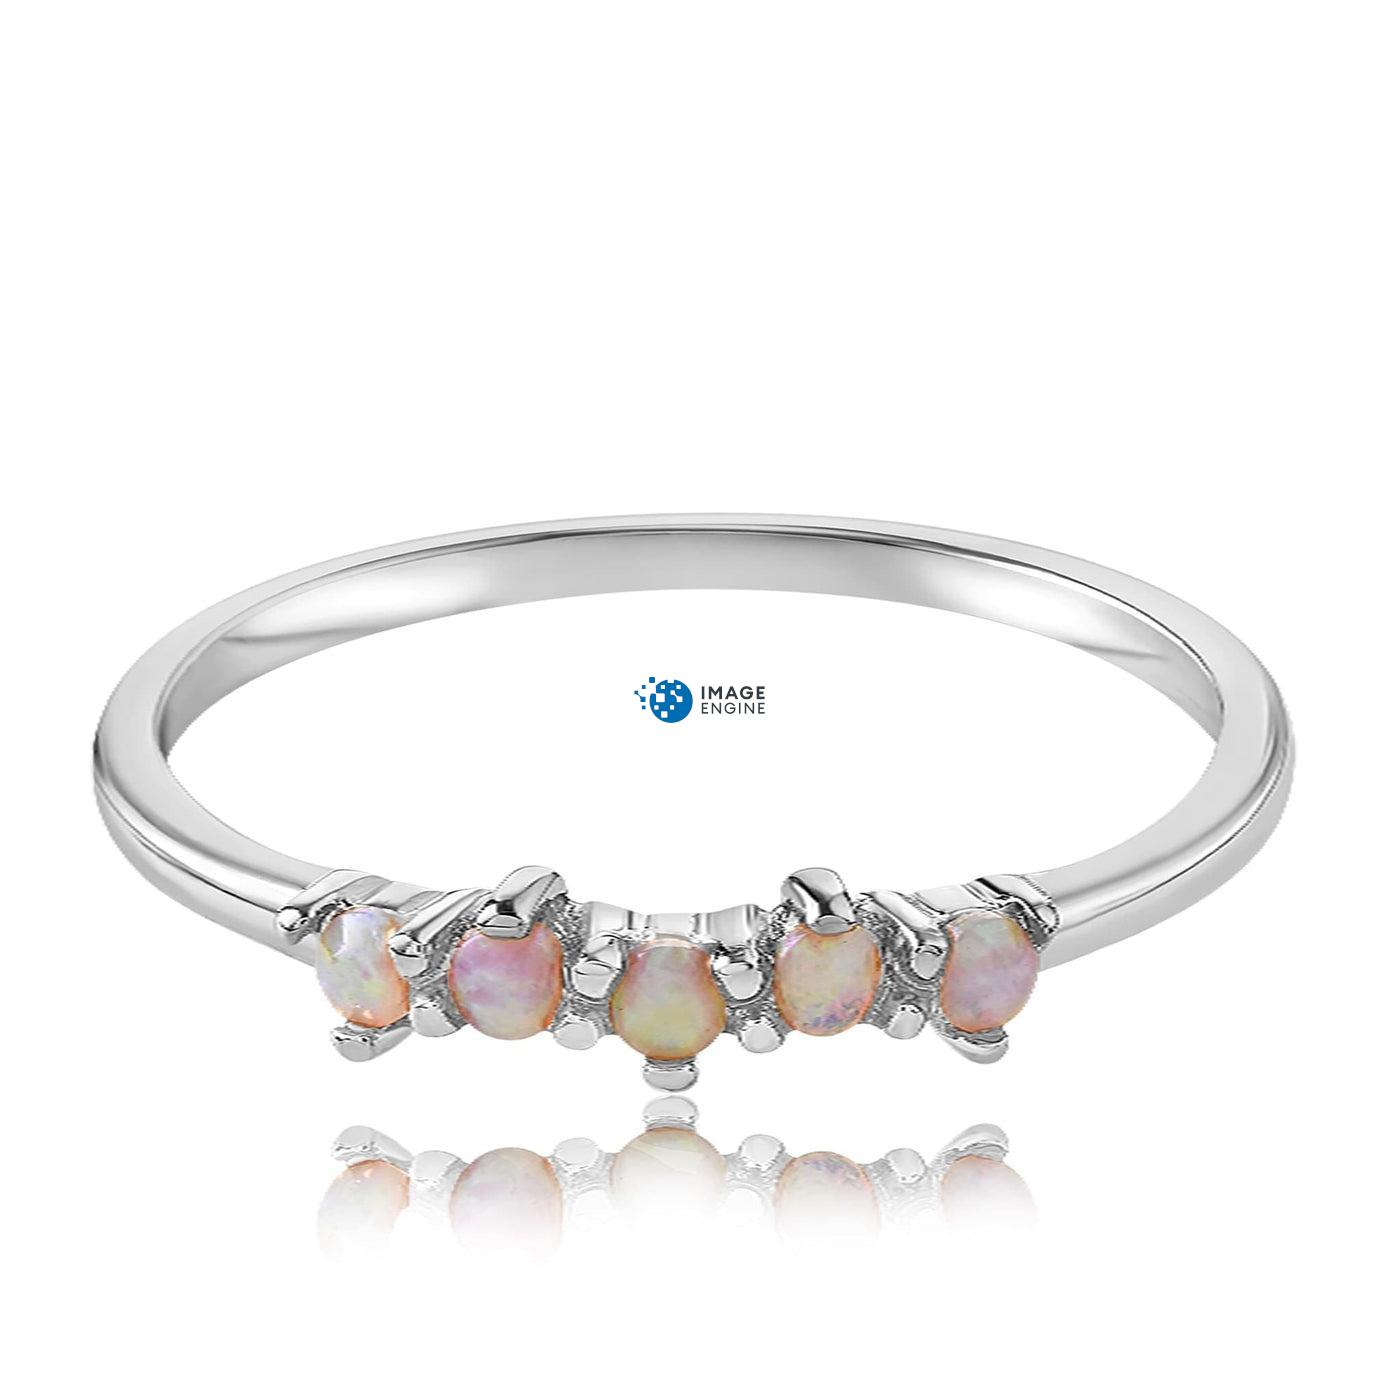 Samantha Simple Dots 5 Opal Ring - Front View Facing Down - 925 Sterling Silver